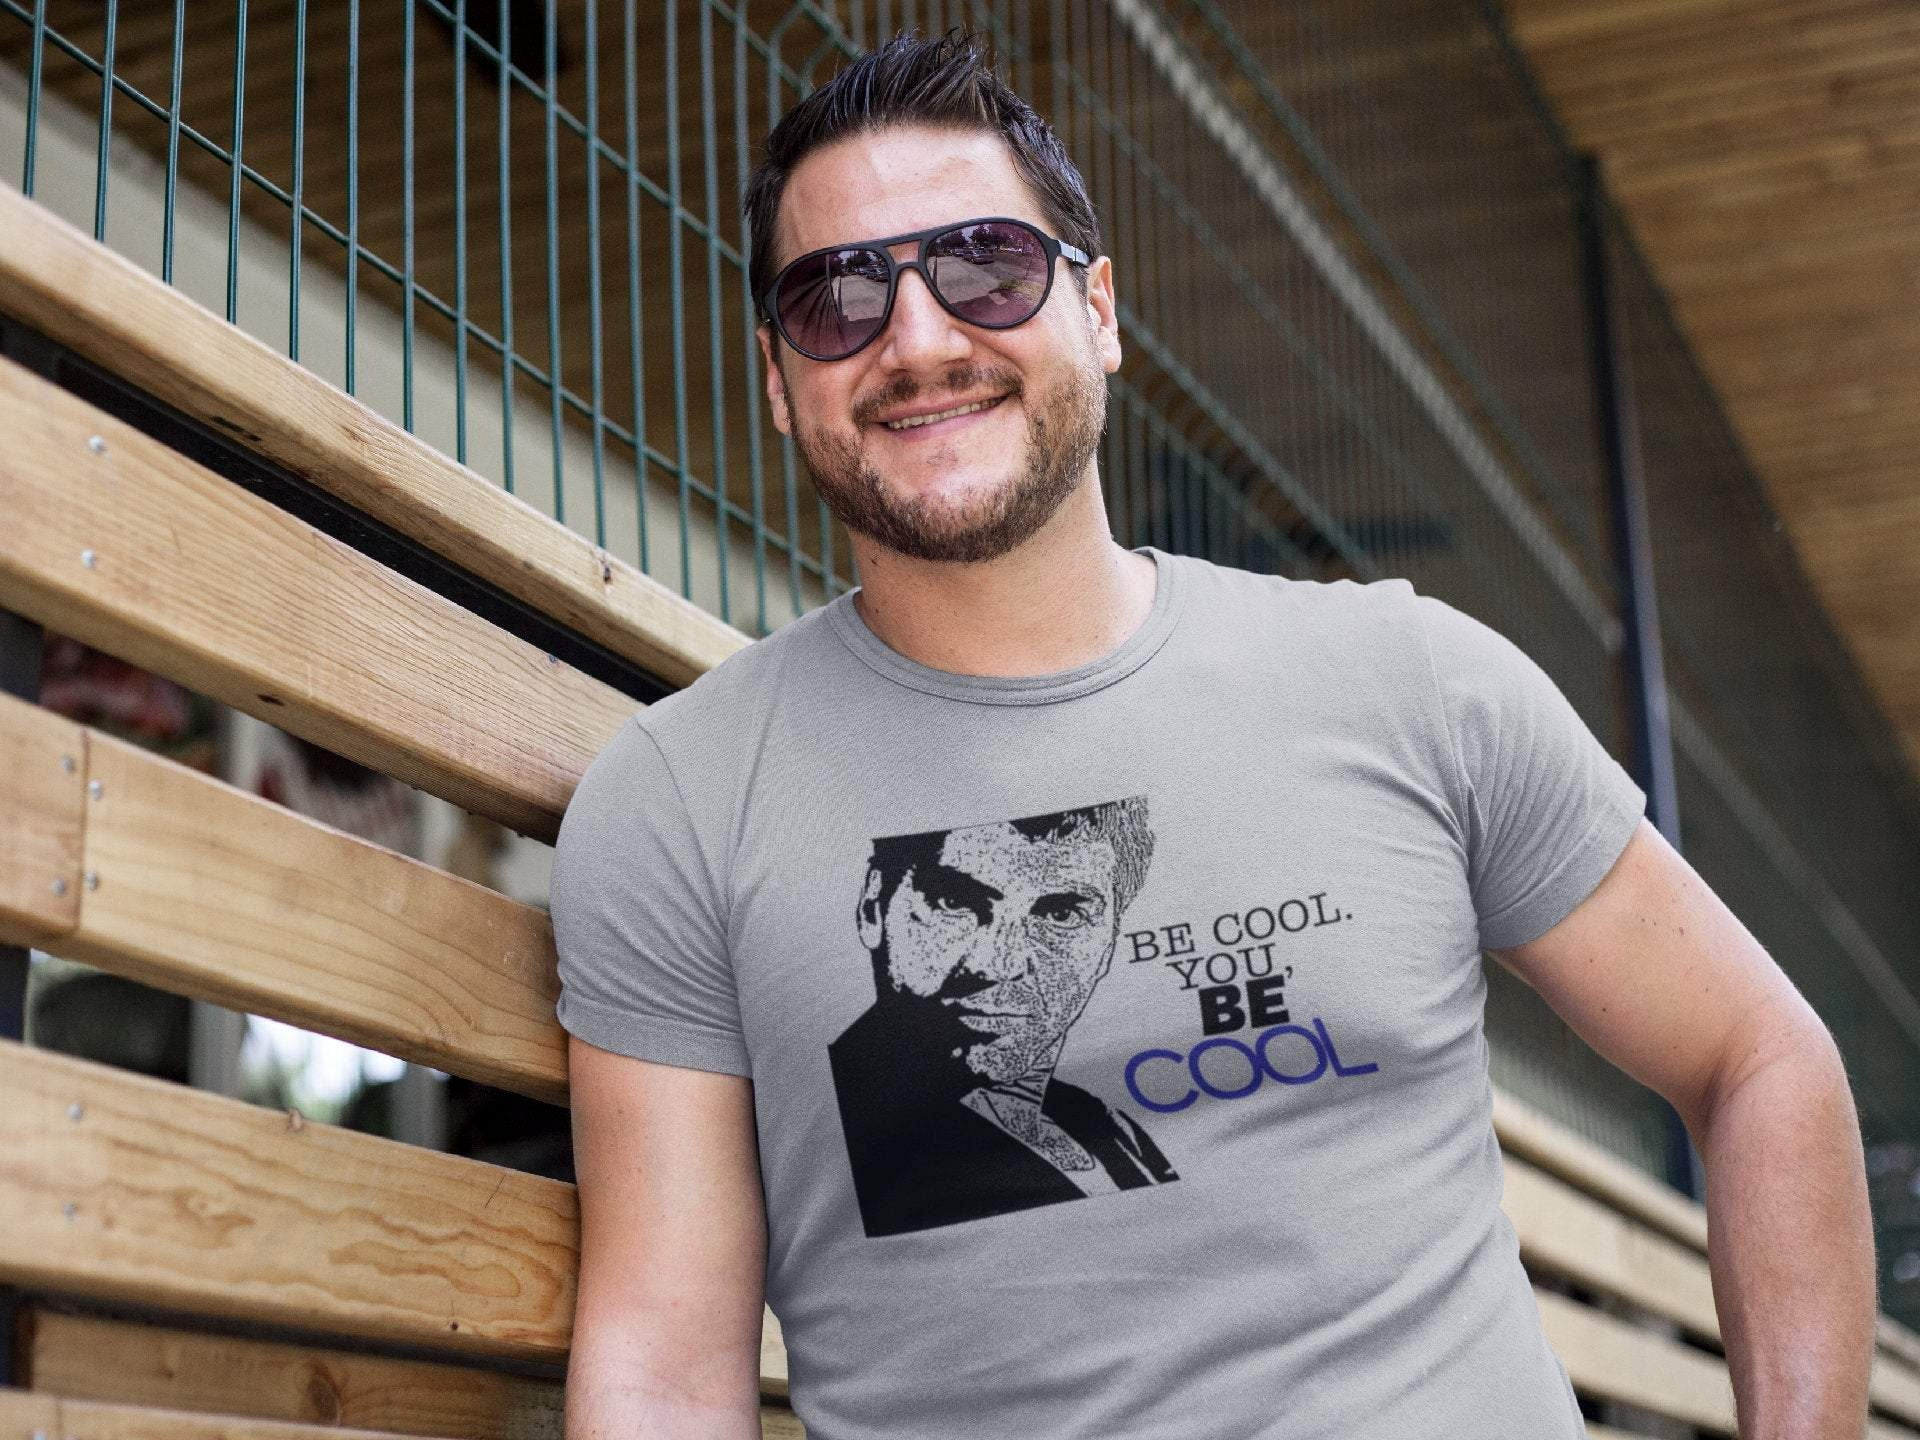 From Dusk Till Dawn - Seth Gecko - Be Cool - You George Clooney Funny T-Shirt Tee Shirt